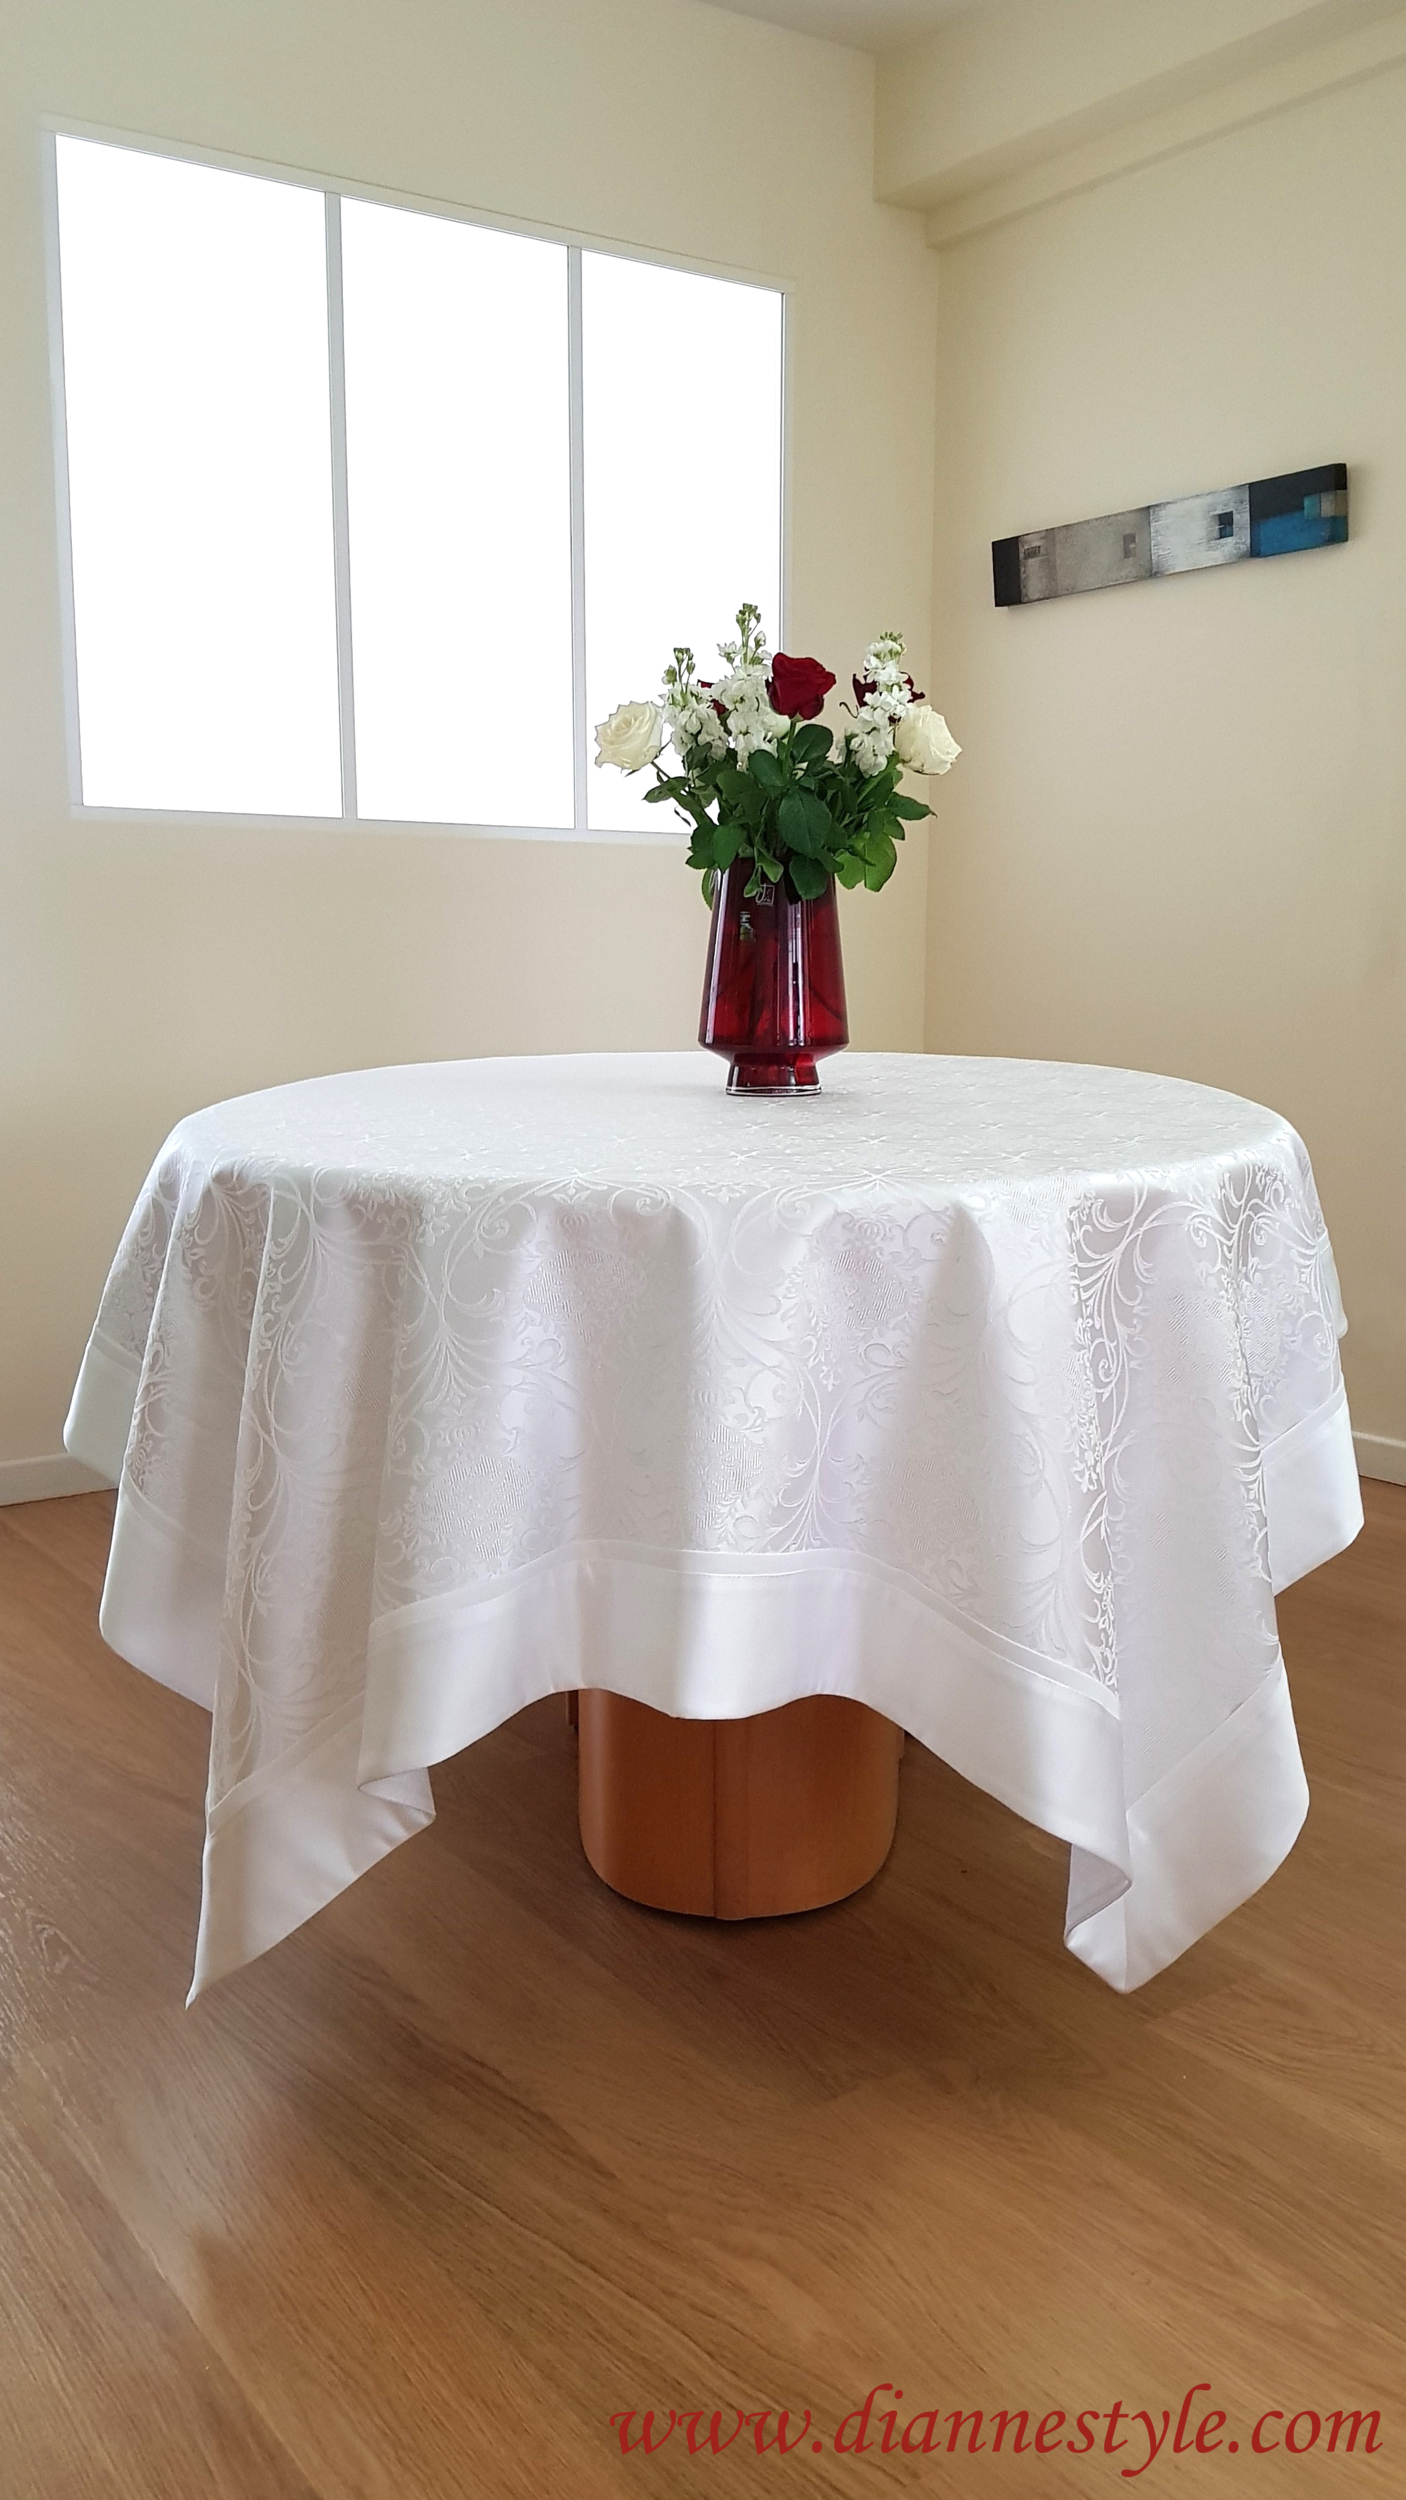 Nappe de table damassée Perle 150x250 cm. Réf. 122